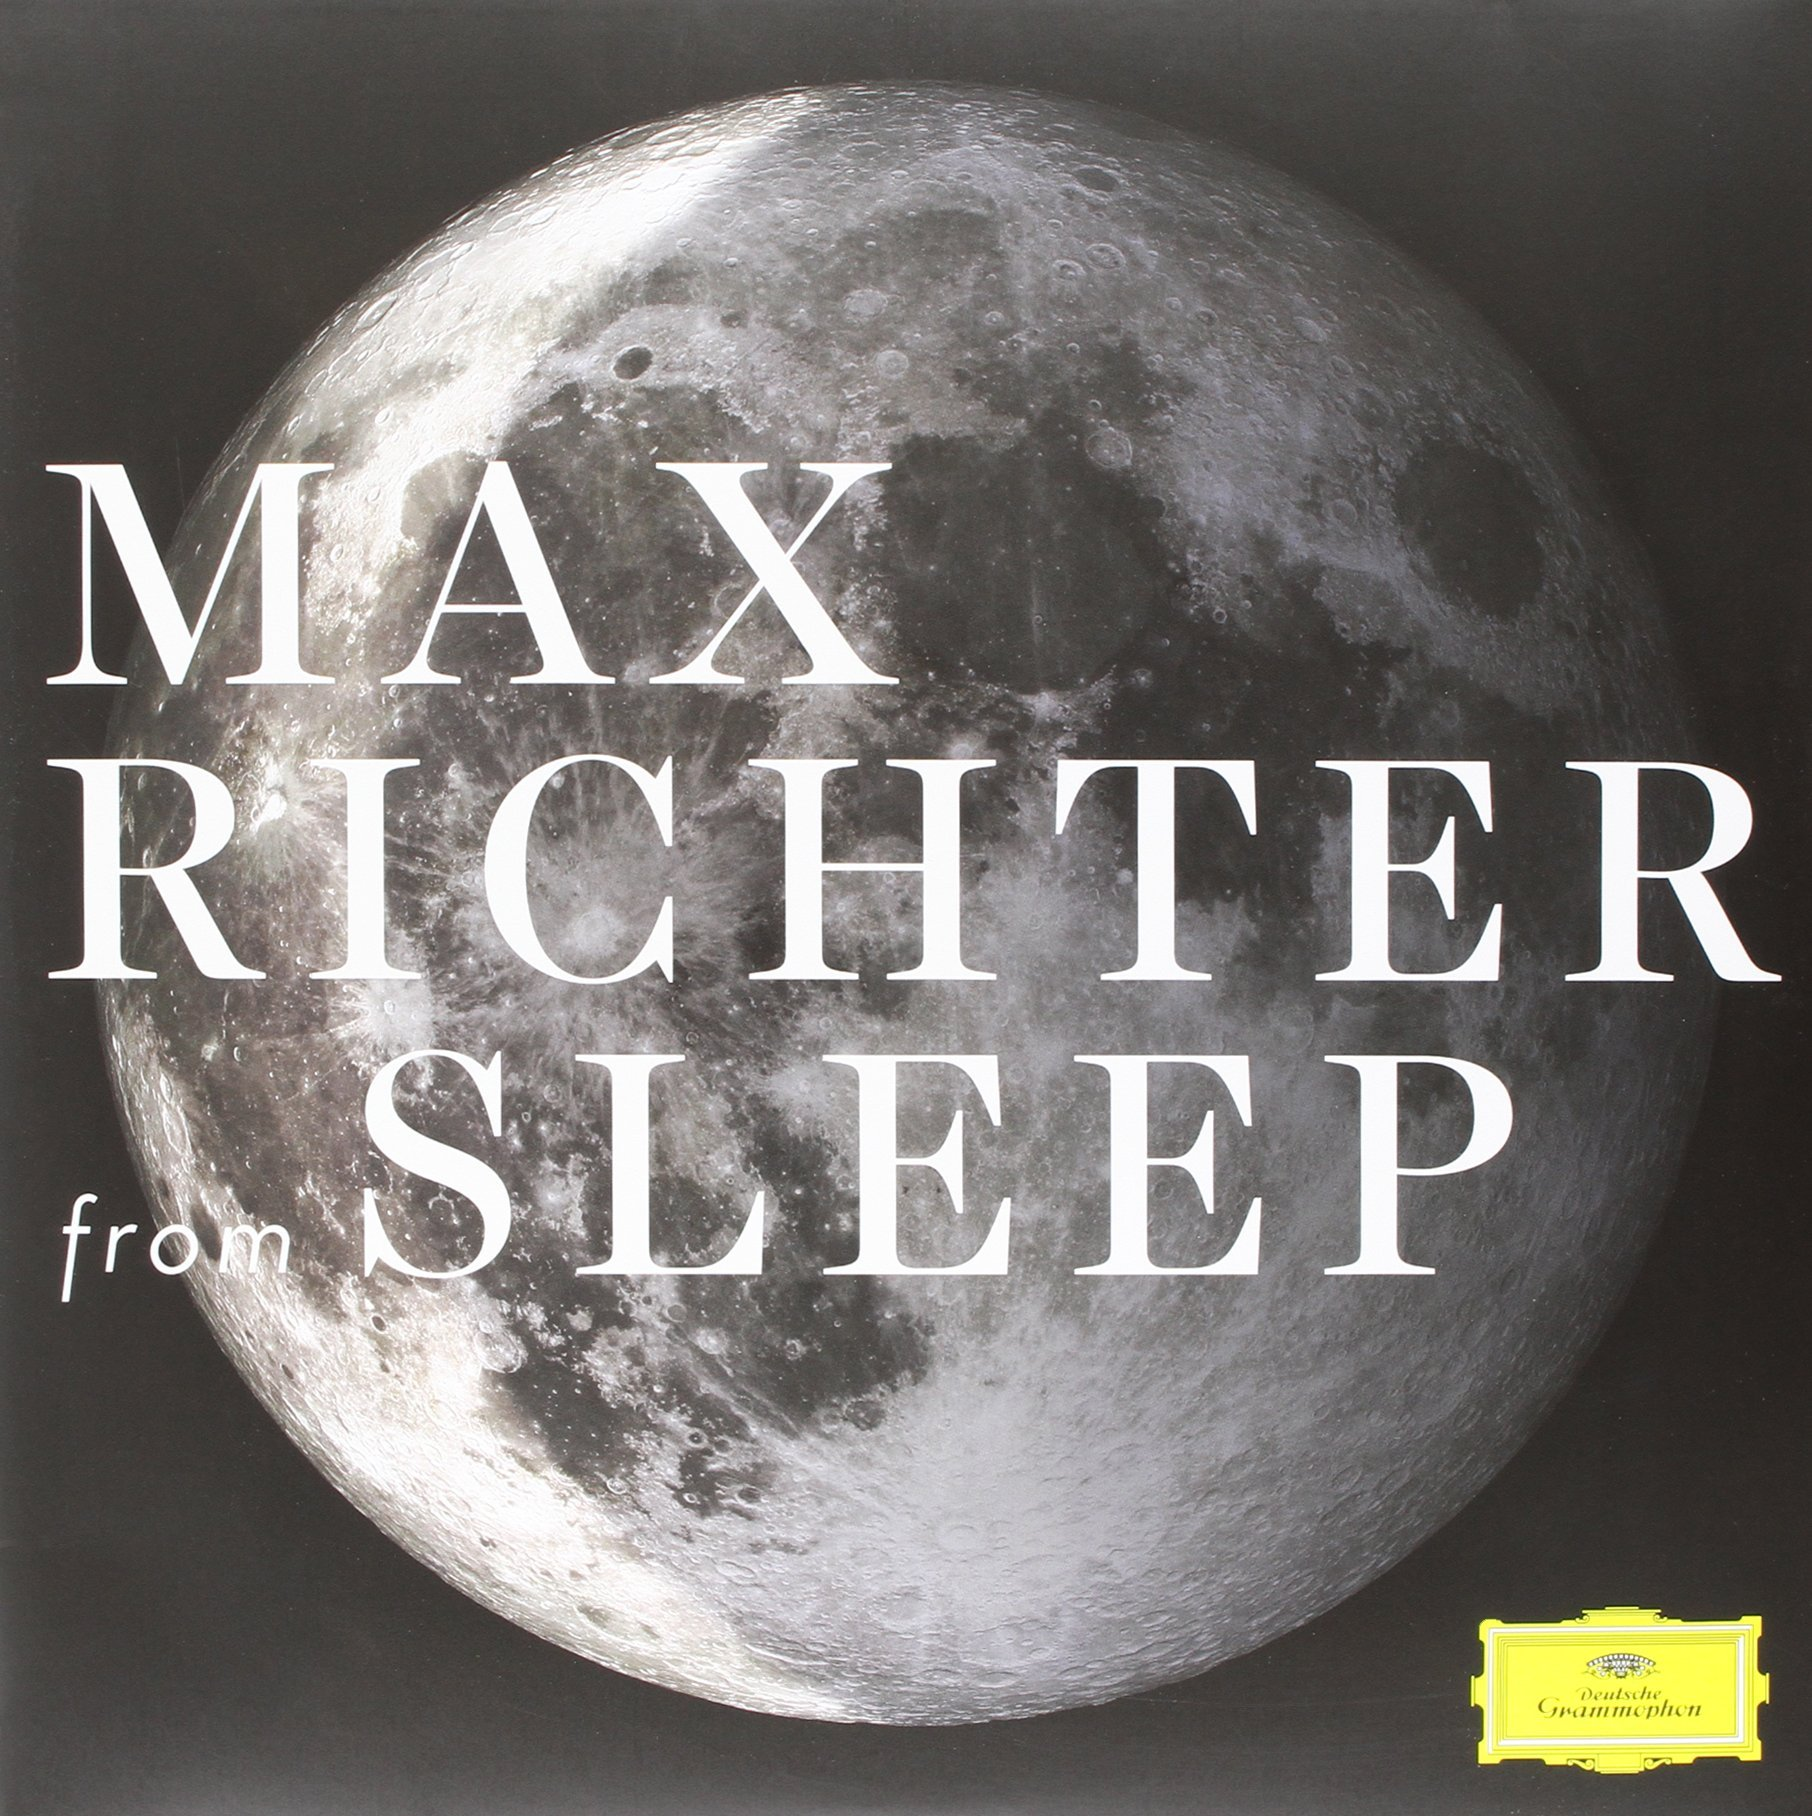 Vinilo : Max Richter - From Sleep (2 Disc)